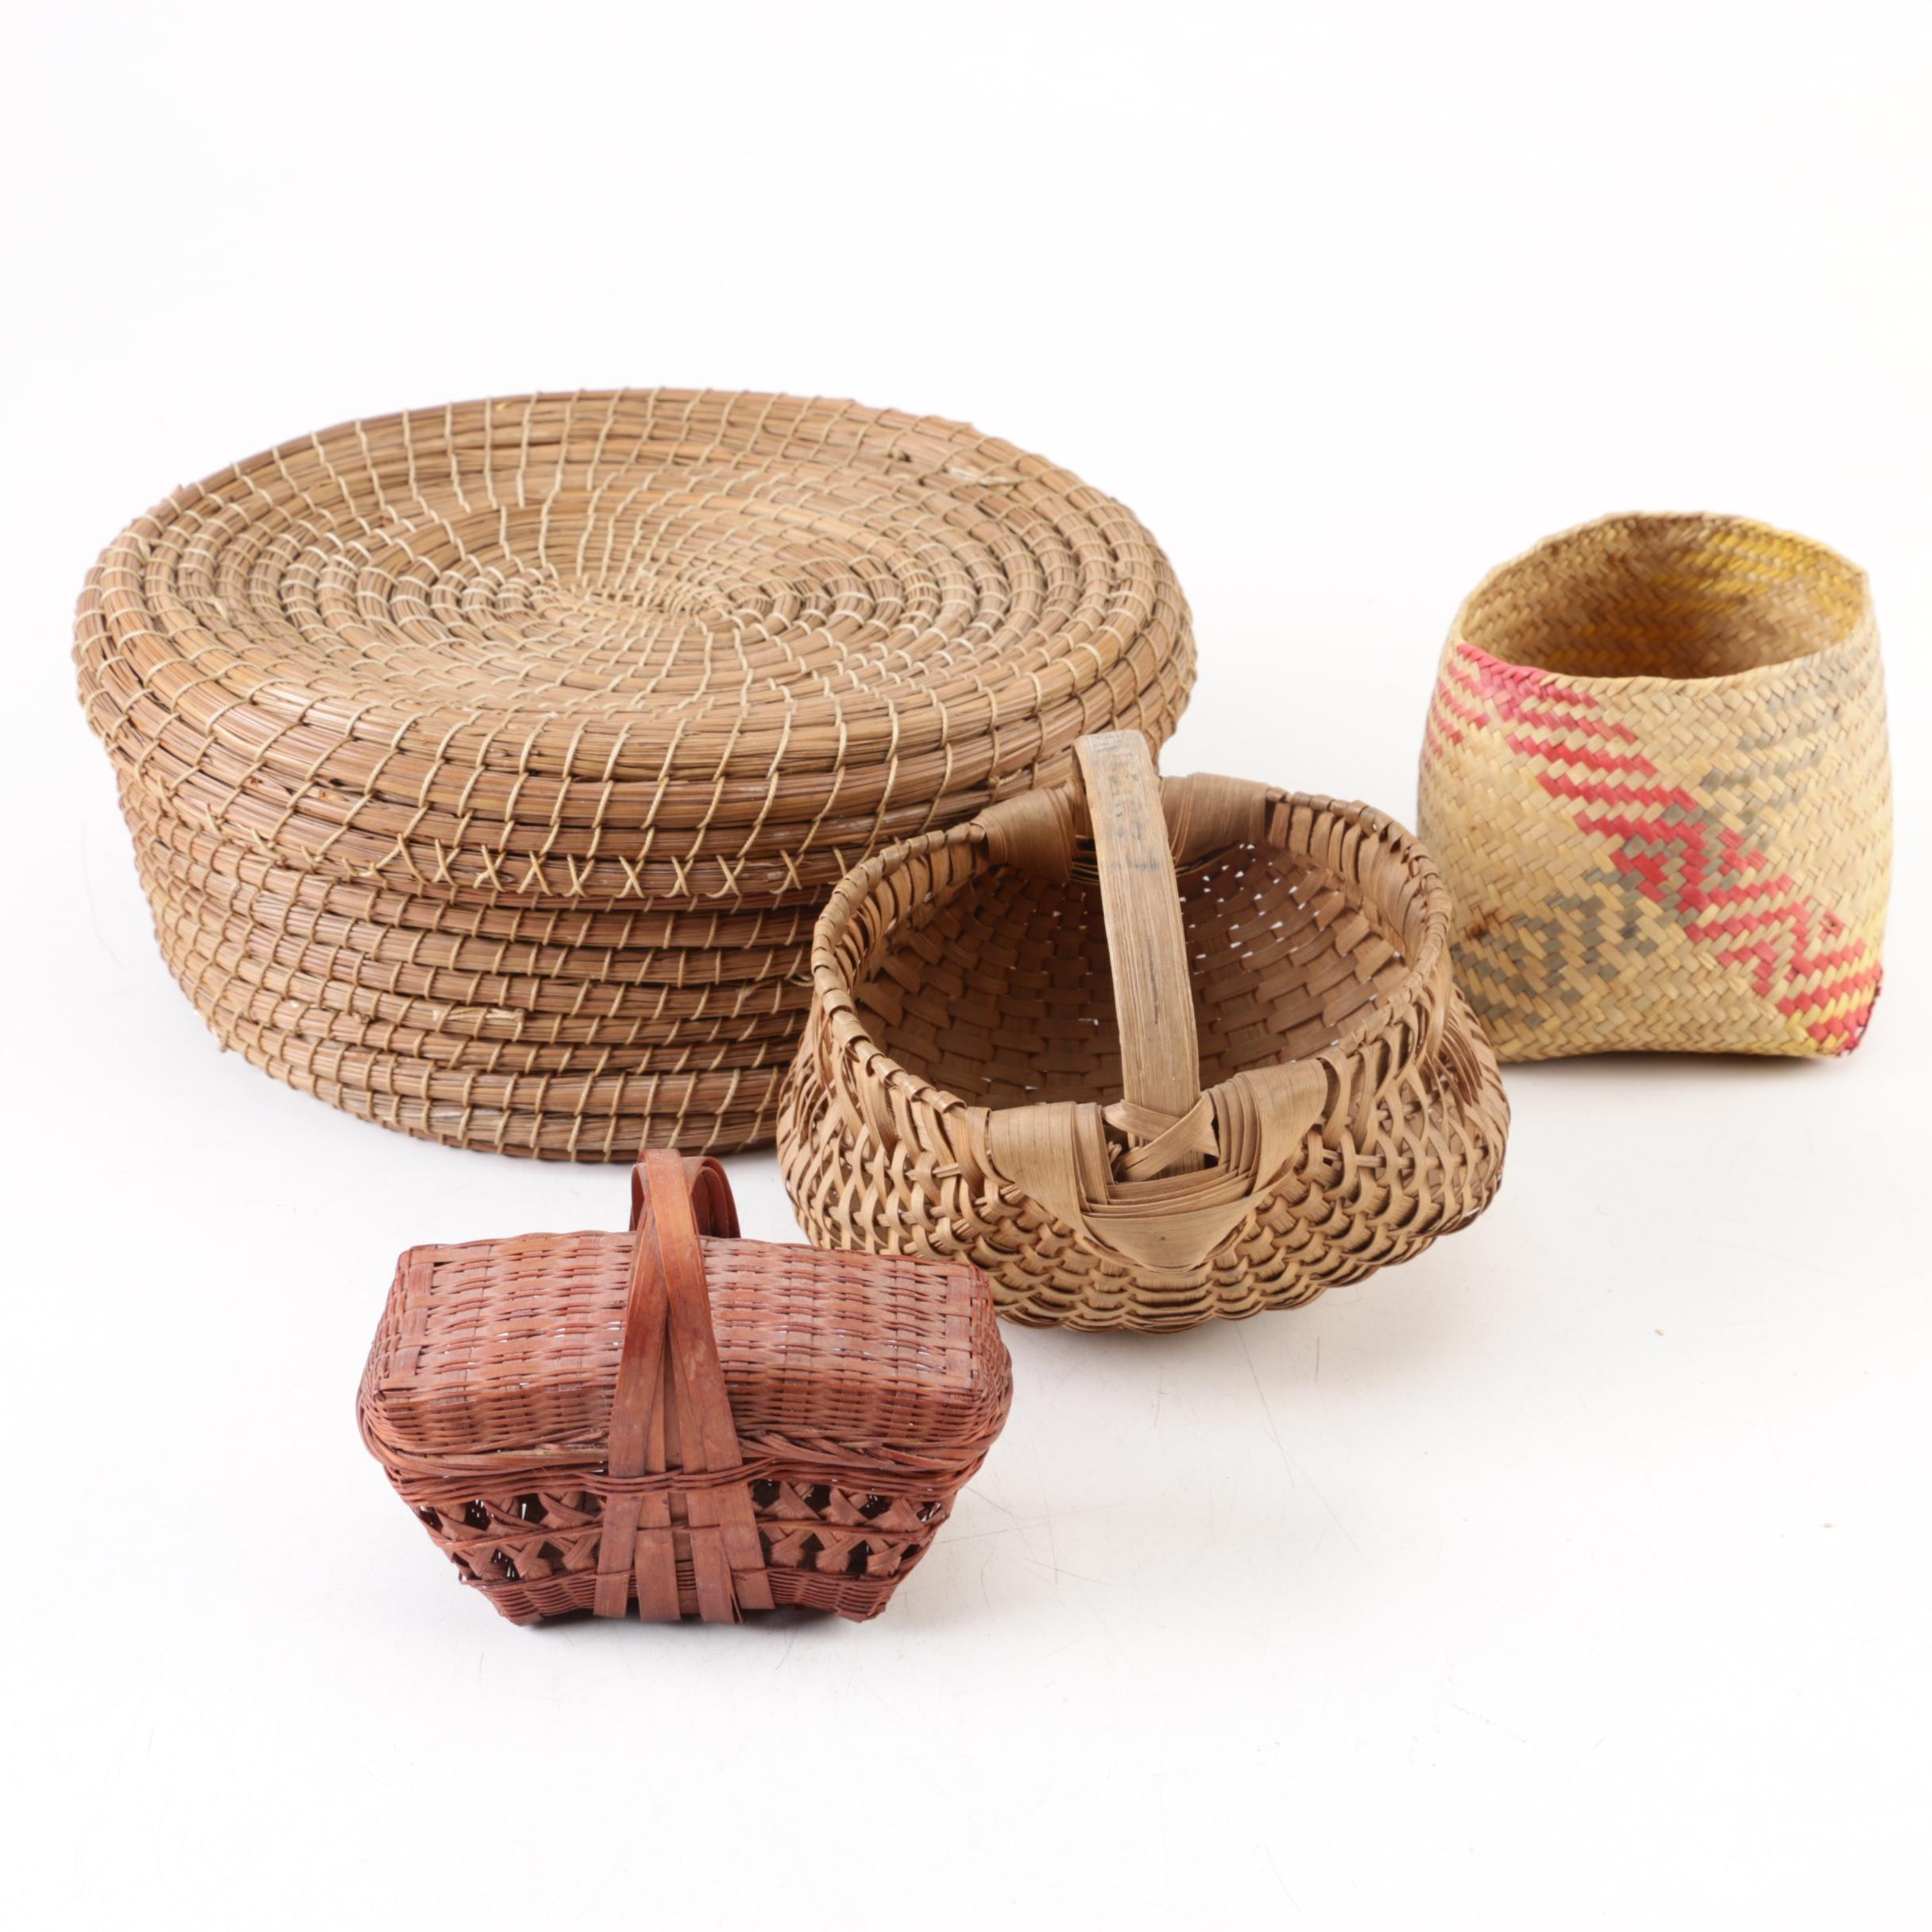 Woven Baskets Including a Round Pine Needle Basket